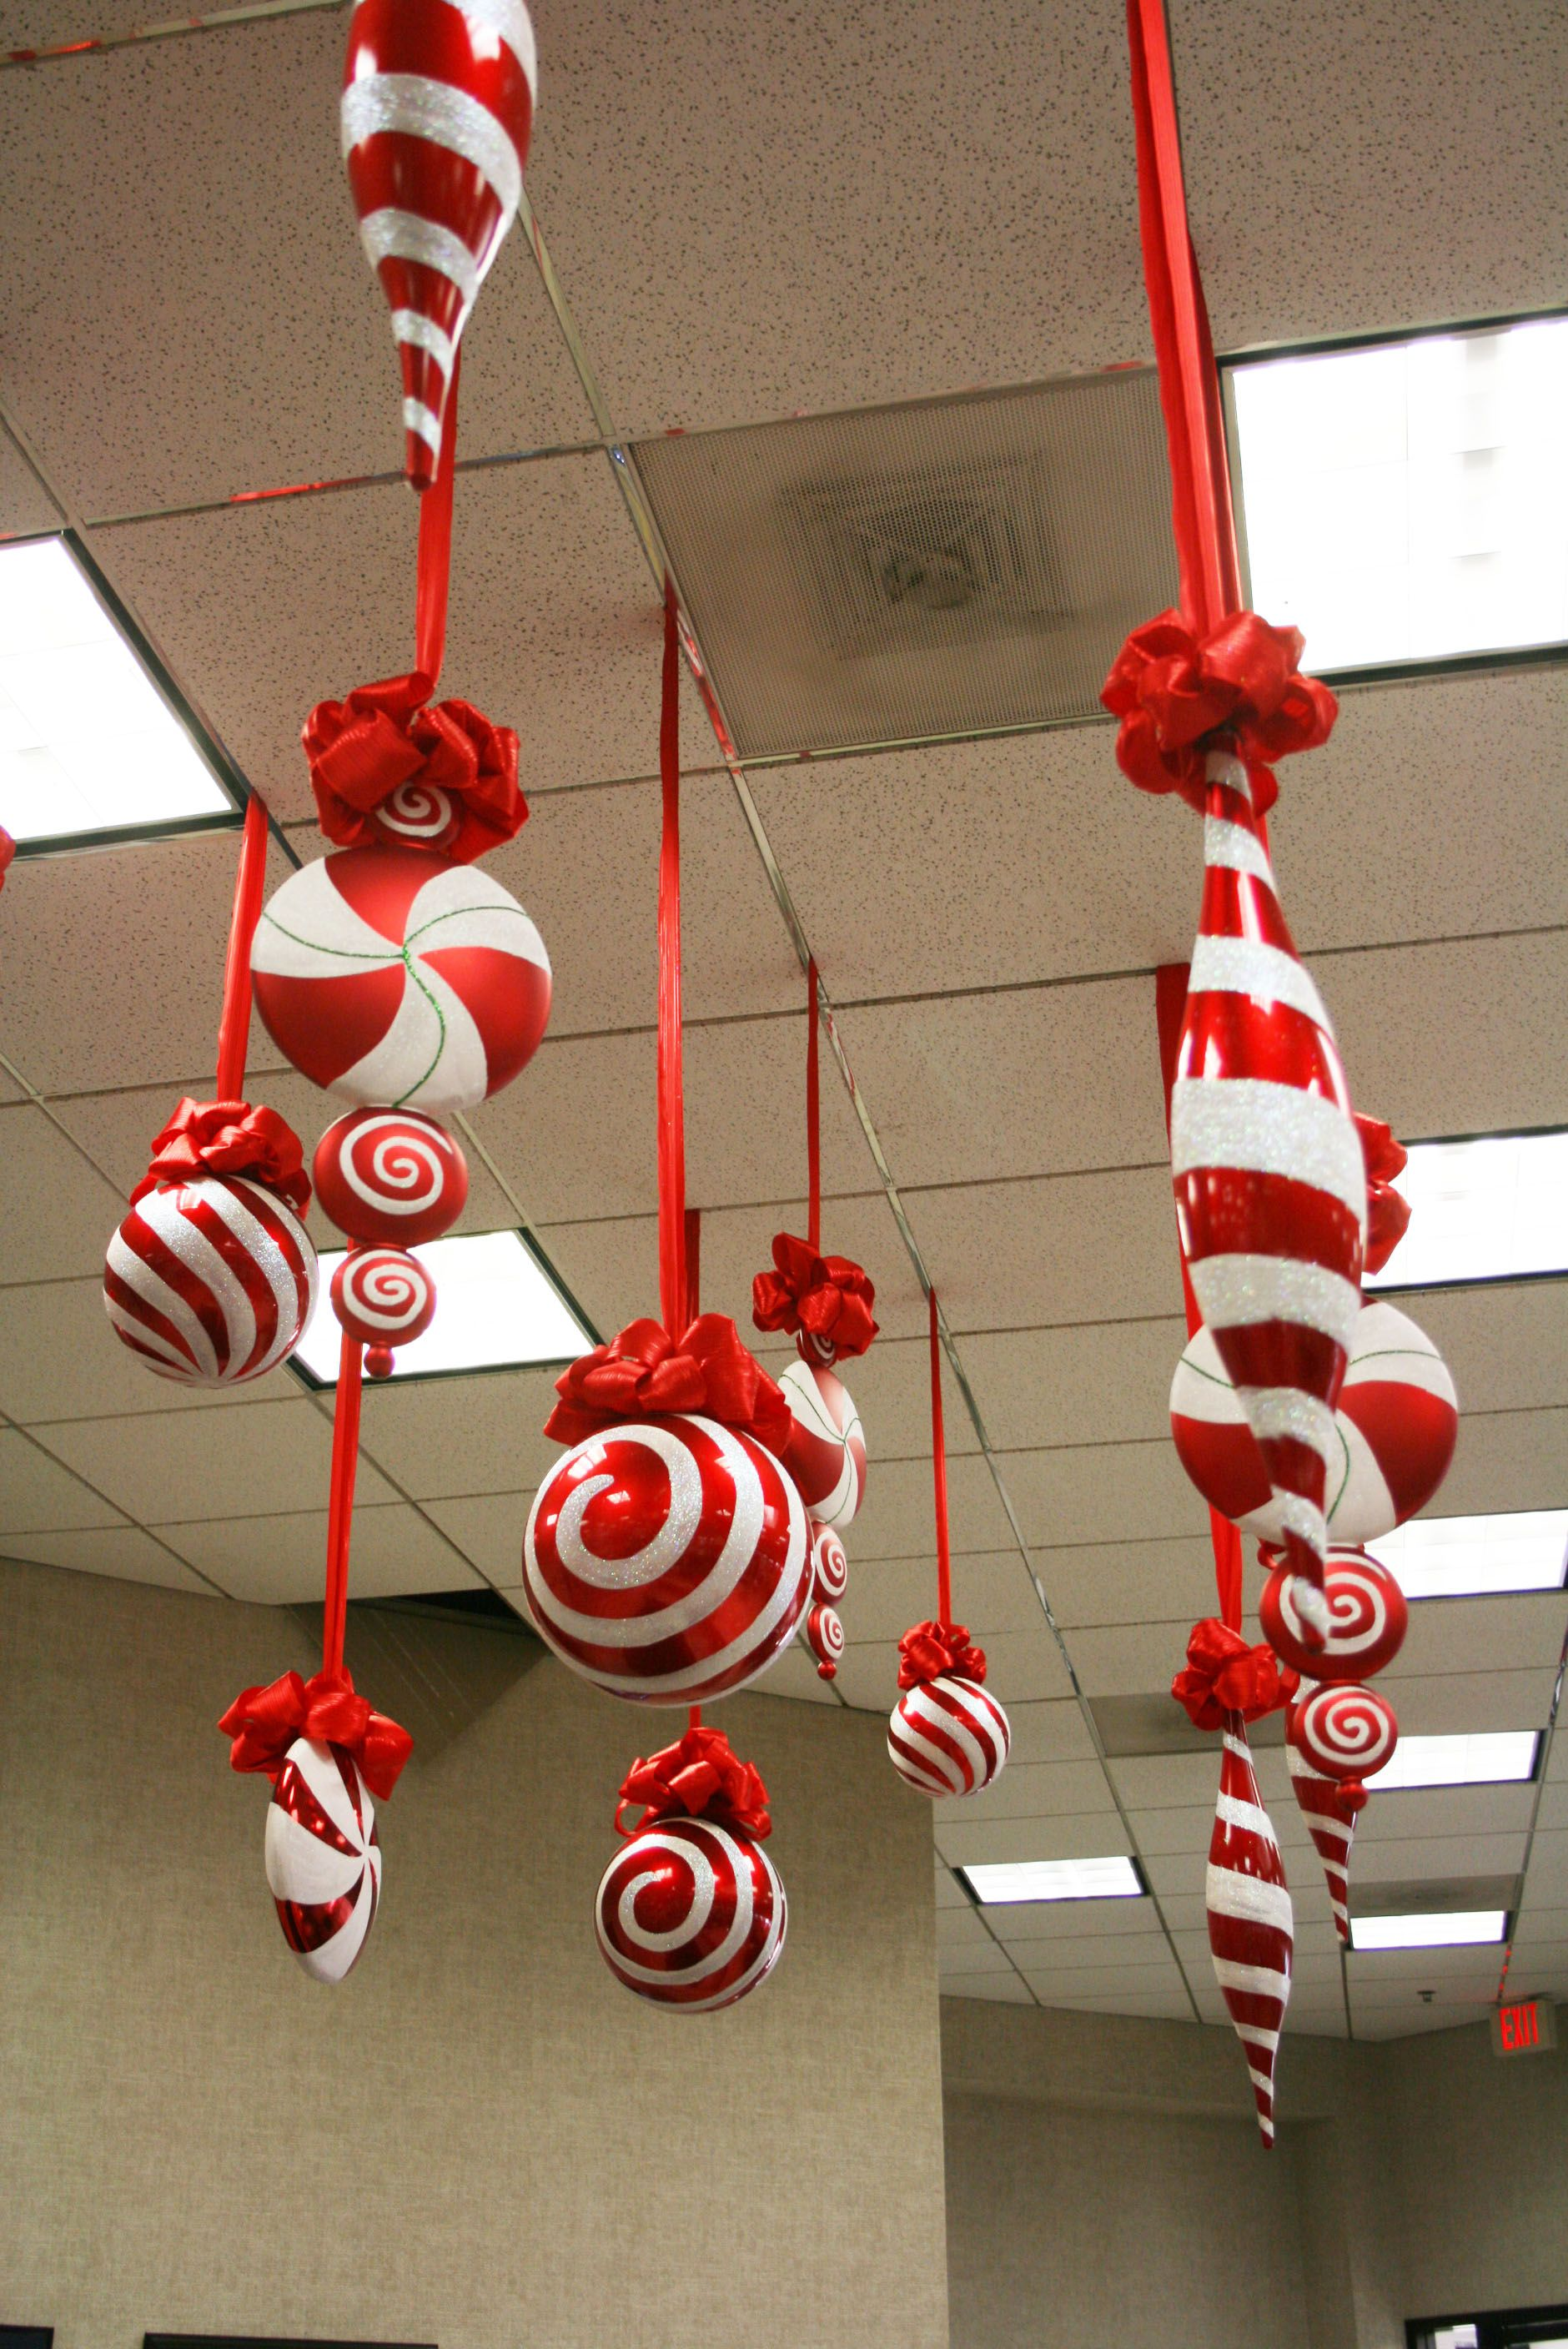 large candy christmas ornaments hanging from the ceiling - Candy Christmas Ornaments